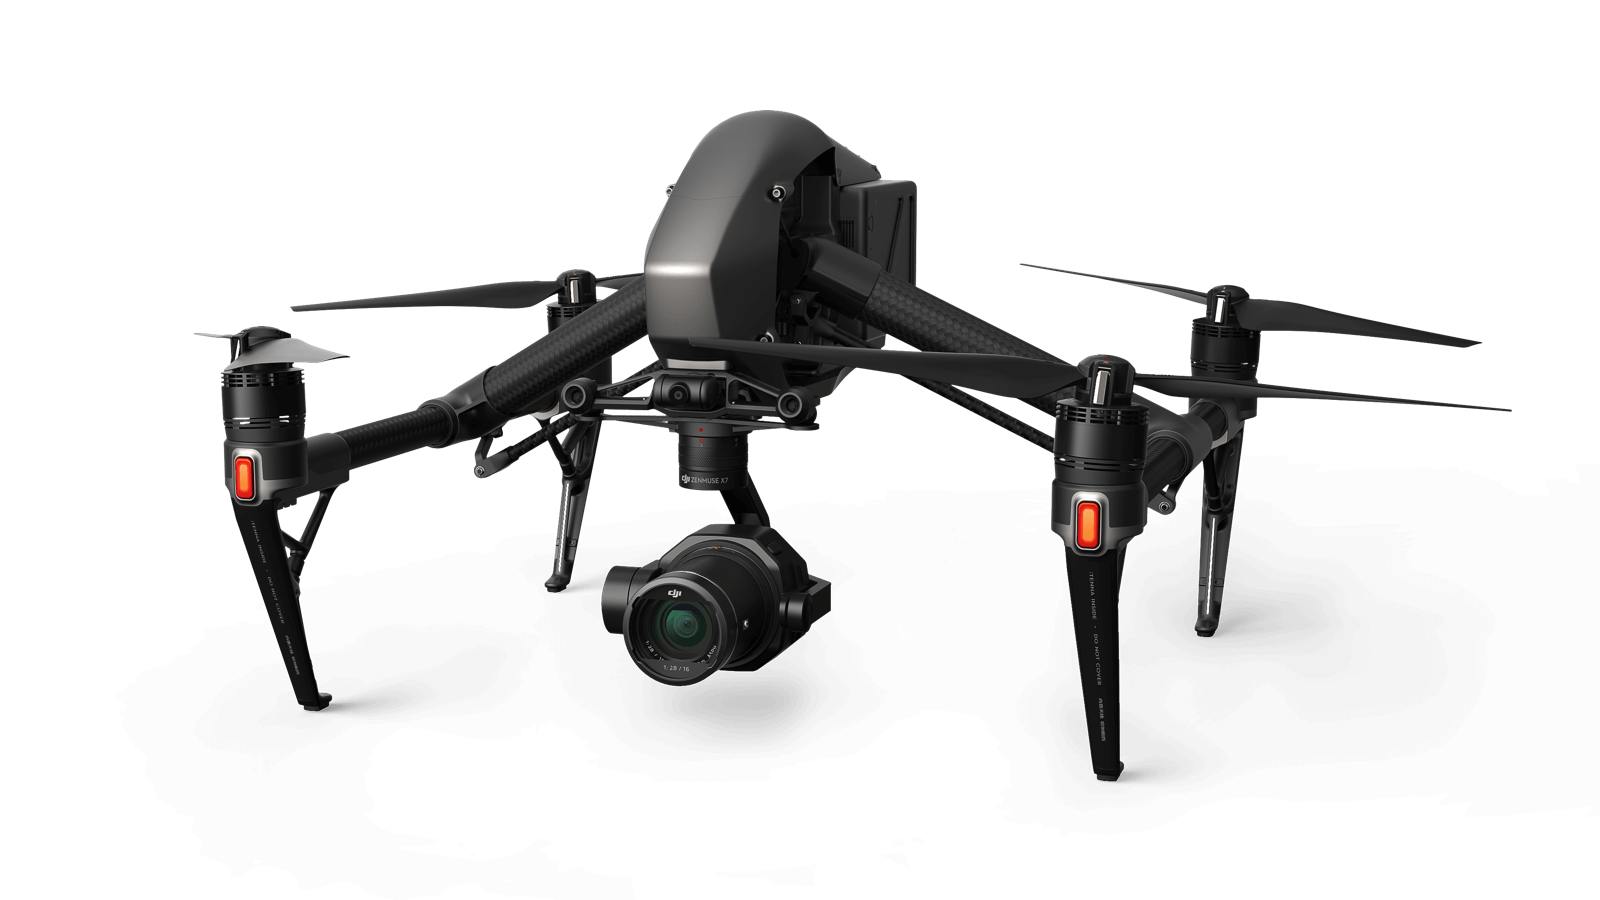 With An Integrated Gimbal Made For High End Filmmaking That Delivers Stunning Resolution And Image Quality Its Compatibility The Inspire 2 Offers